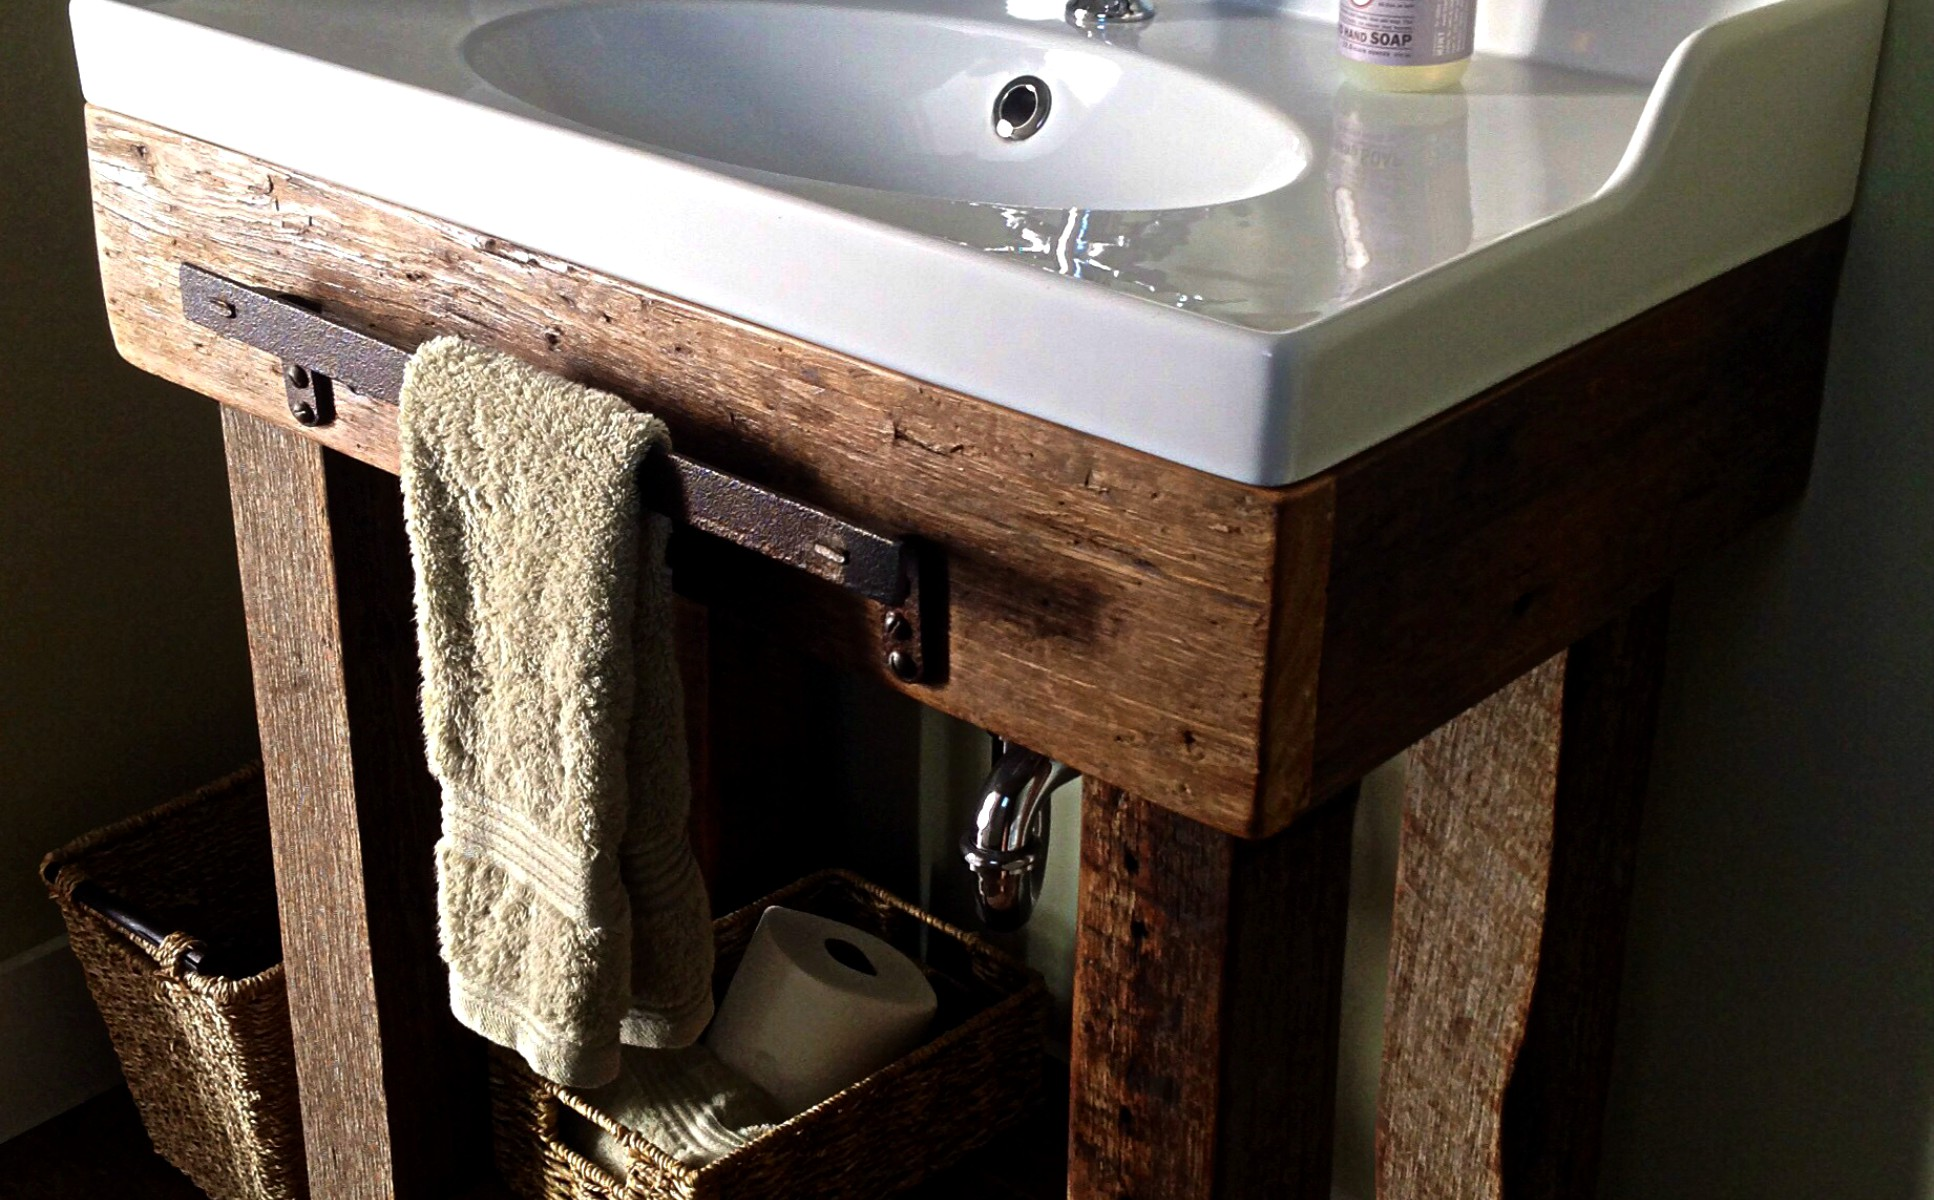 jimmy-barnwood-bathroom-vanity-reclaimed-wood.jpg